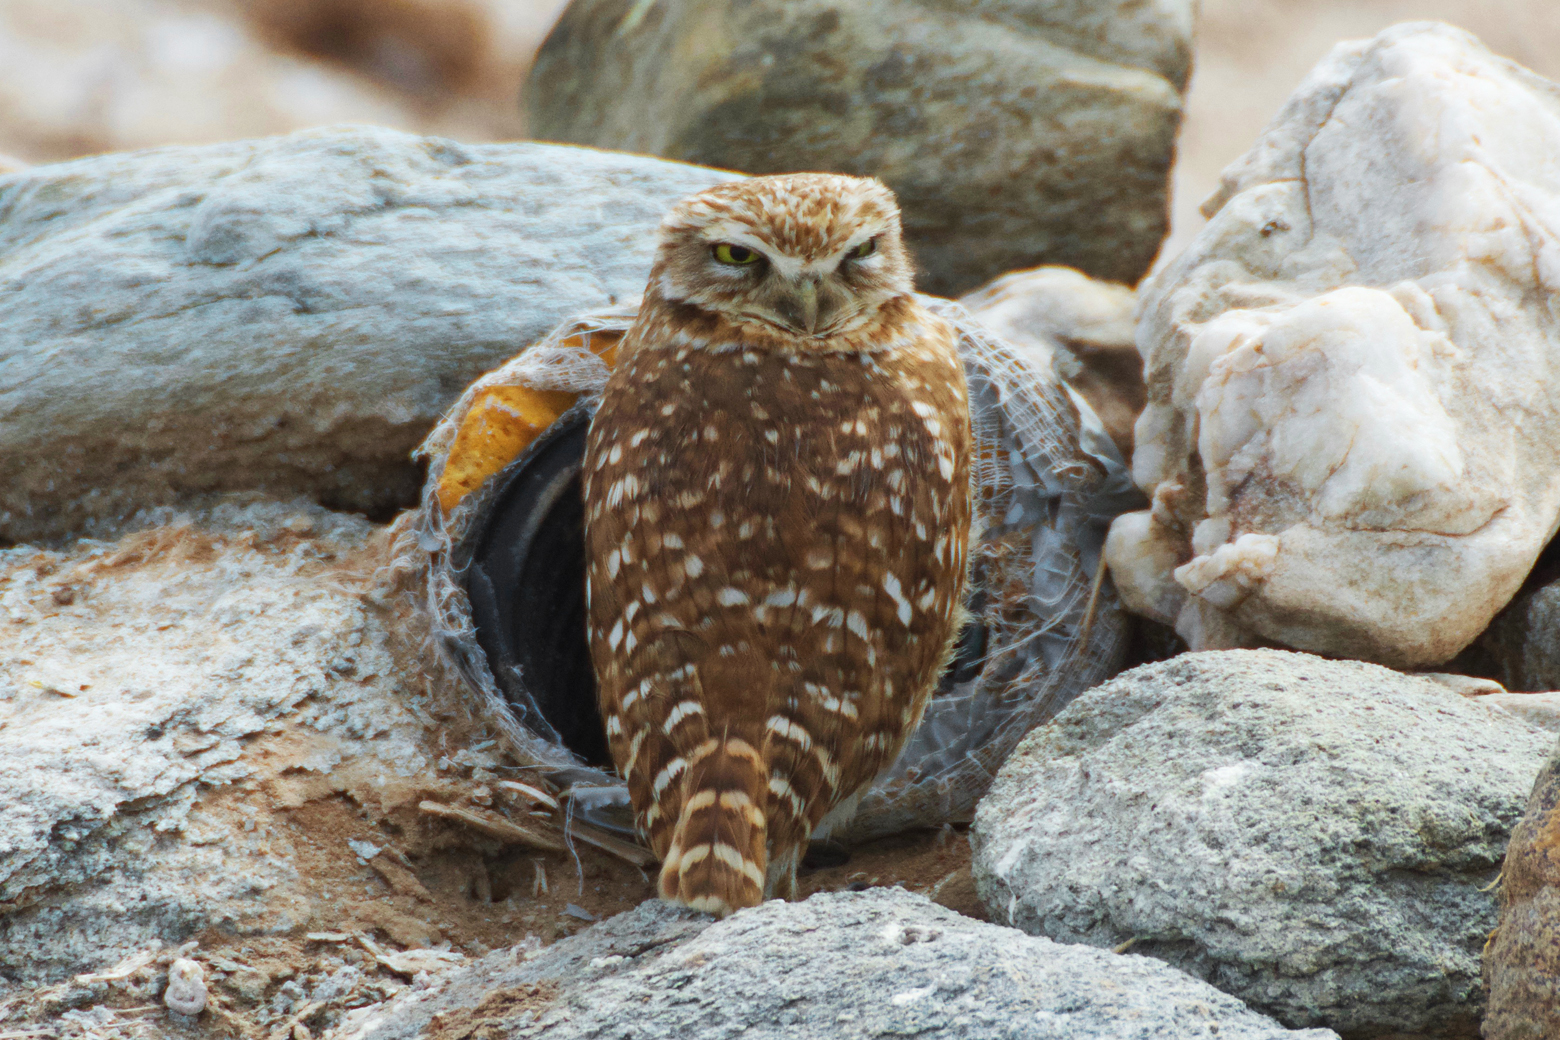 Burrowing owl perched outside of his burrow (a pipe sticking out of rock pile) with his head turned to look at us